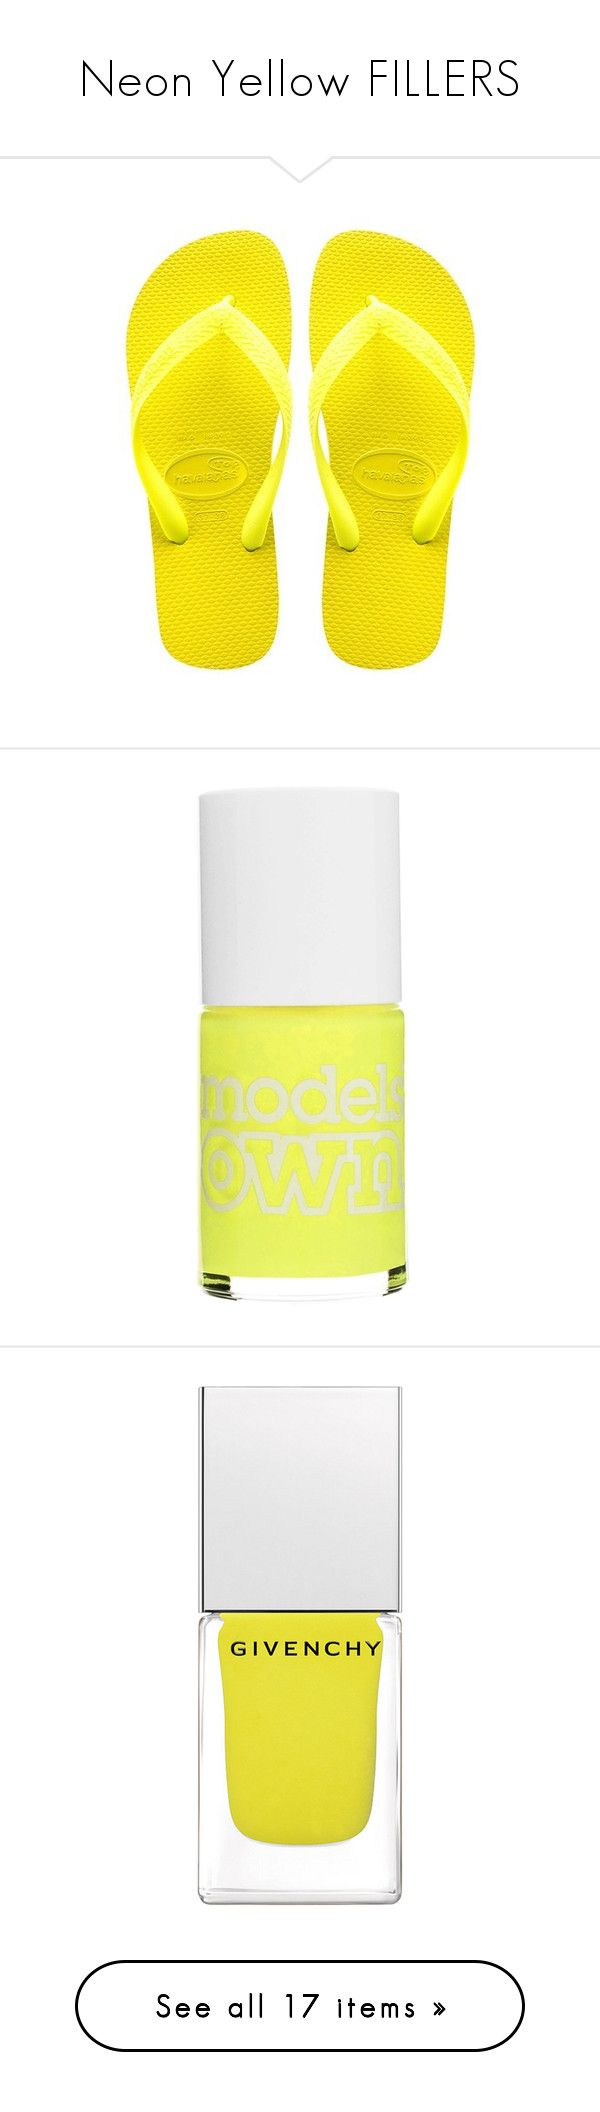 """Neon Yellow FILLERS"" by stelbell ❤ liked on Polyvore featuring neon, fillers, neonfillers, shoes, sandals, flip flops, flats, neon yellow shoes, neon yellow flip flops and neon yellow sandals"